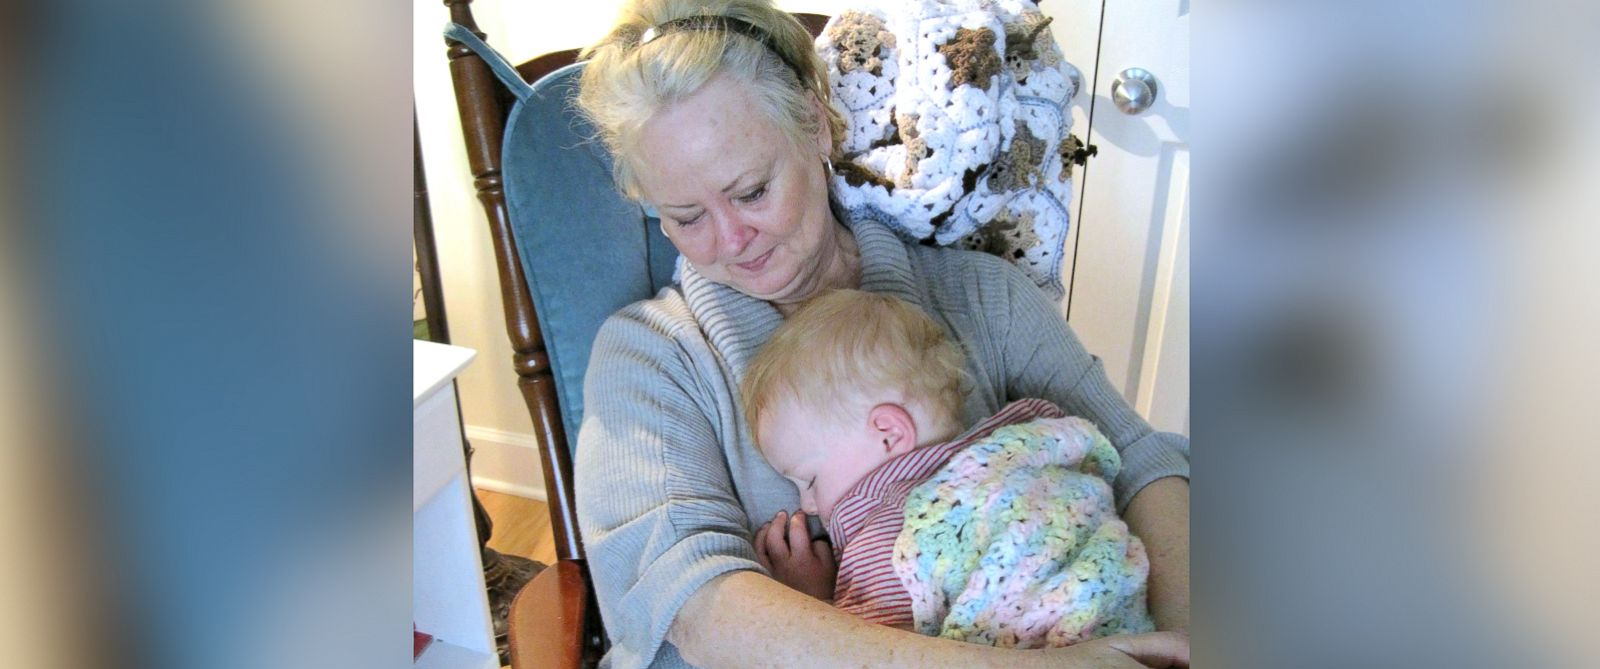 PHOTO: Emily Phillips with a grandchild.